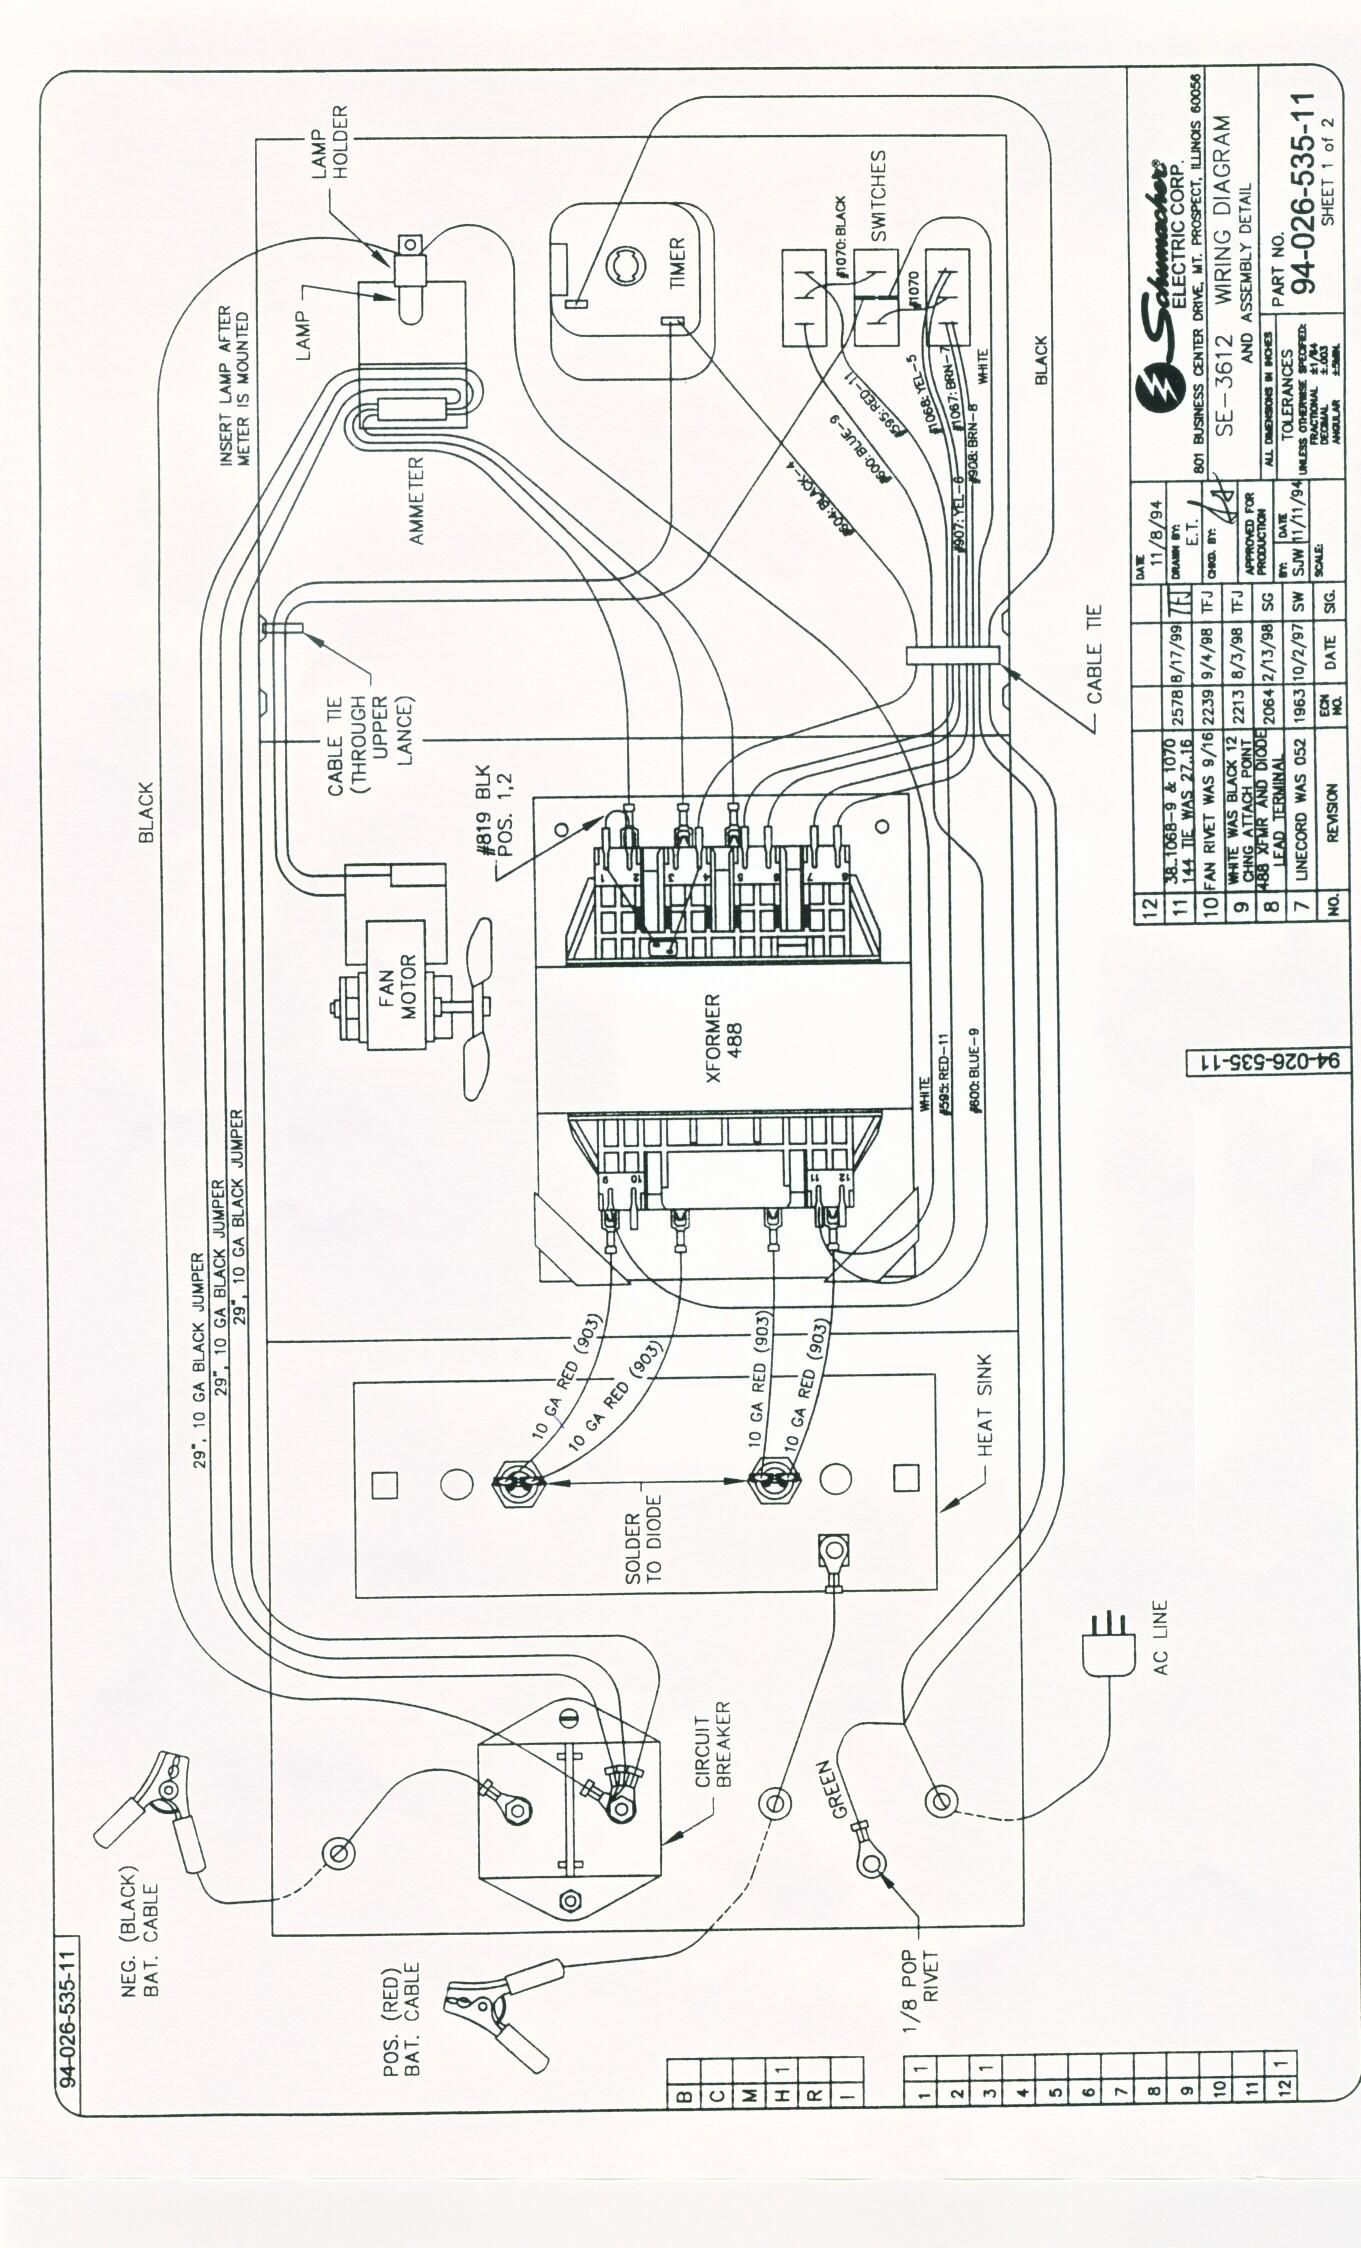 schumacher battery charger wiring diagram 06 counterfactual schumacher battery charger wiring diagram